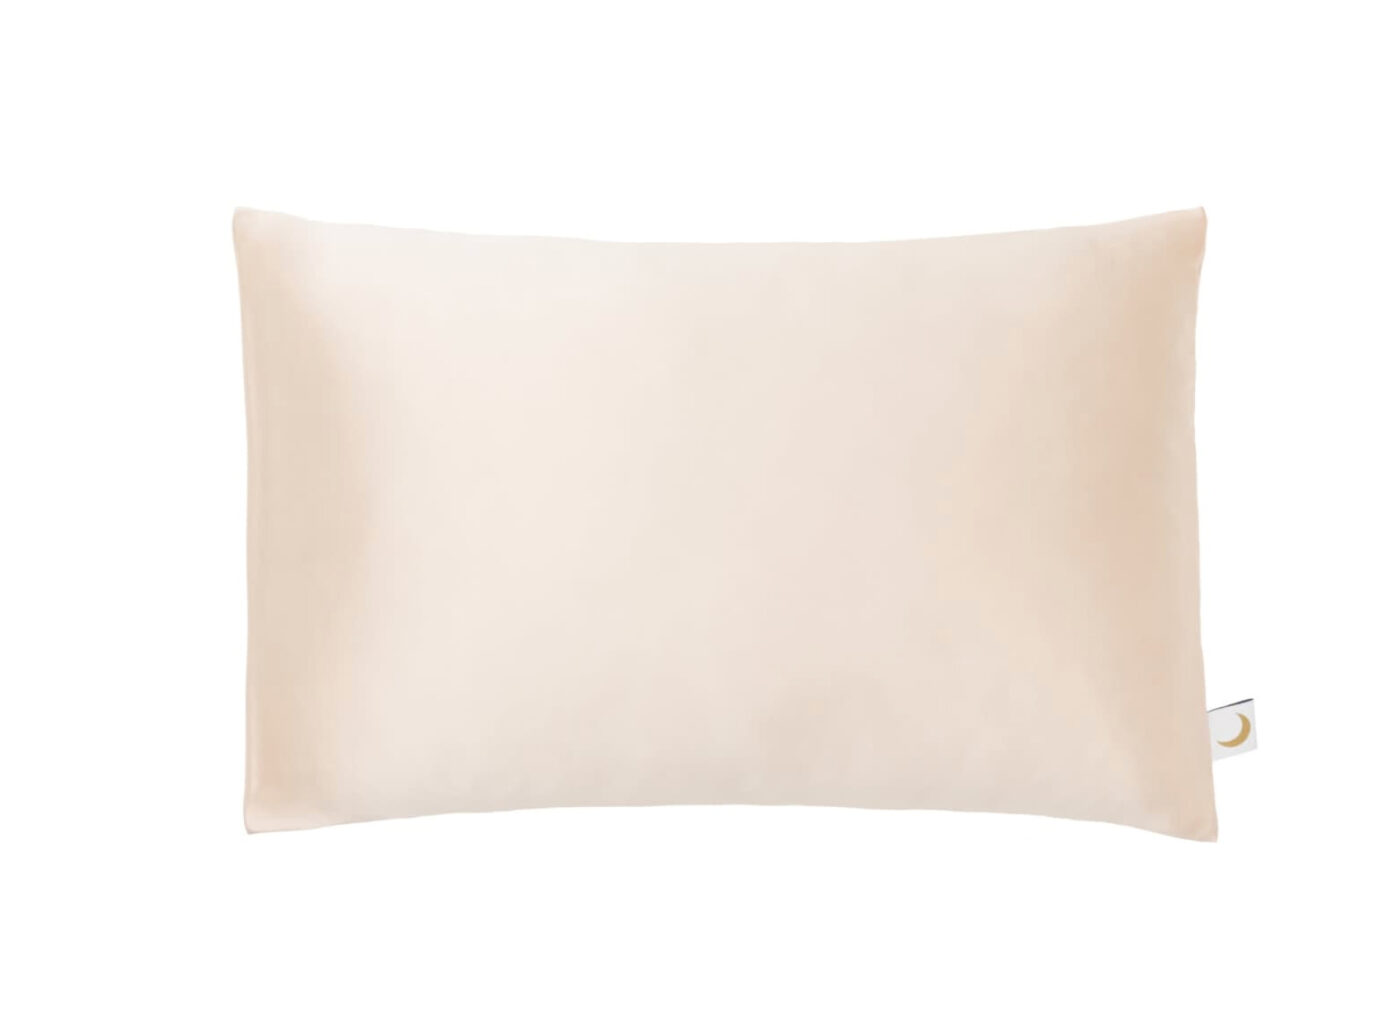 Moonchild Sustainable Peace Silk Pillowcase